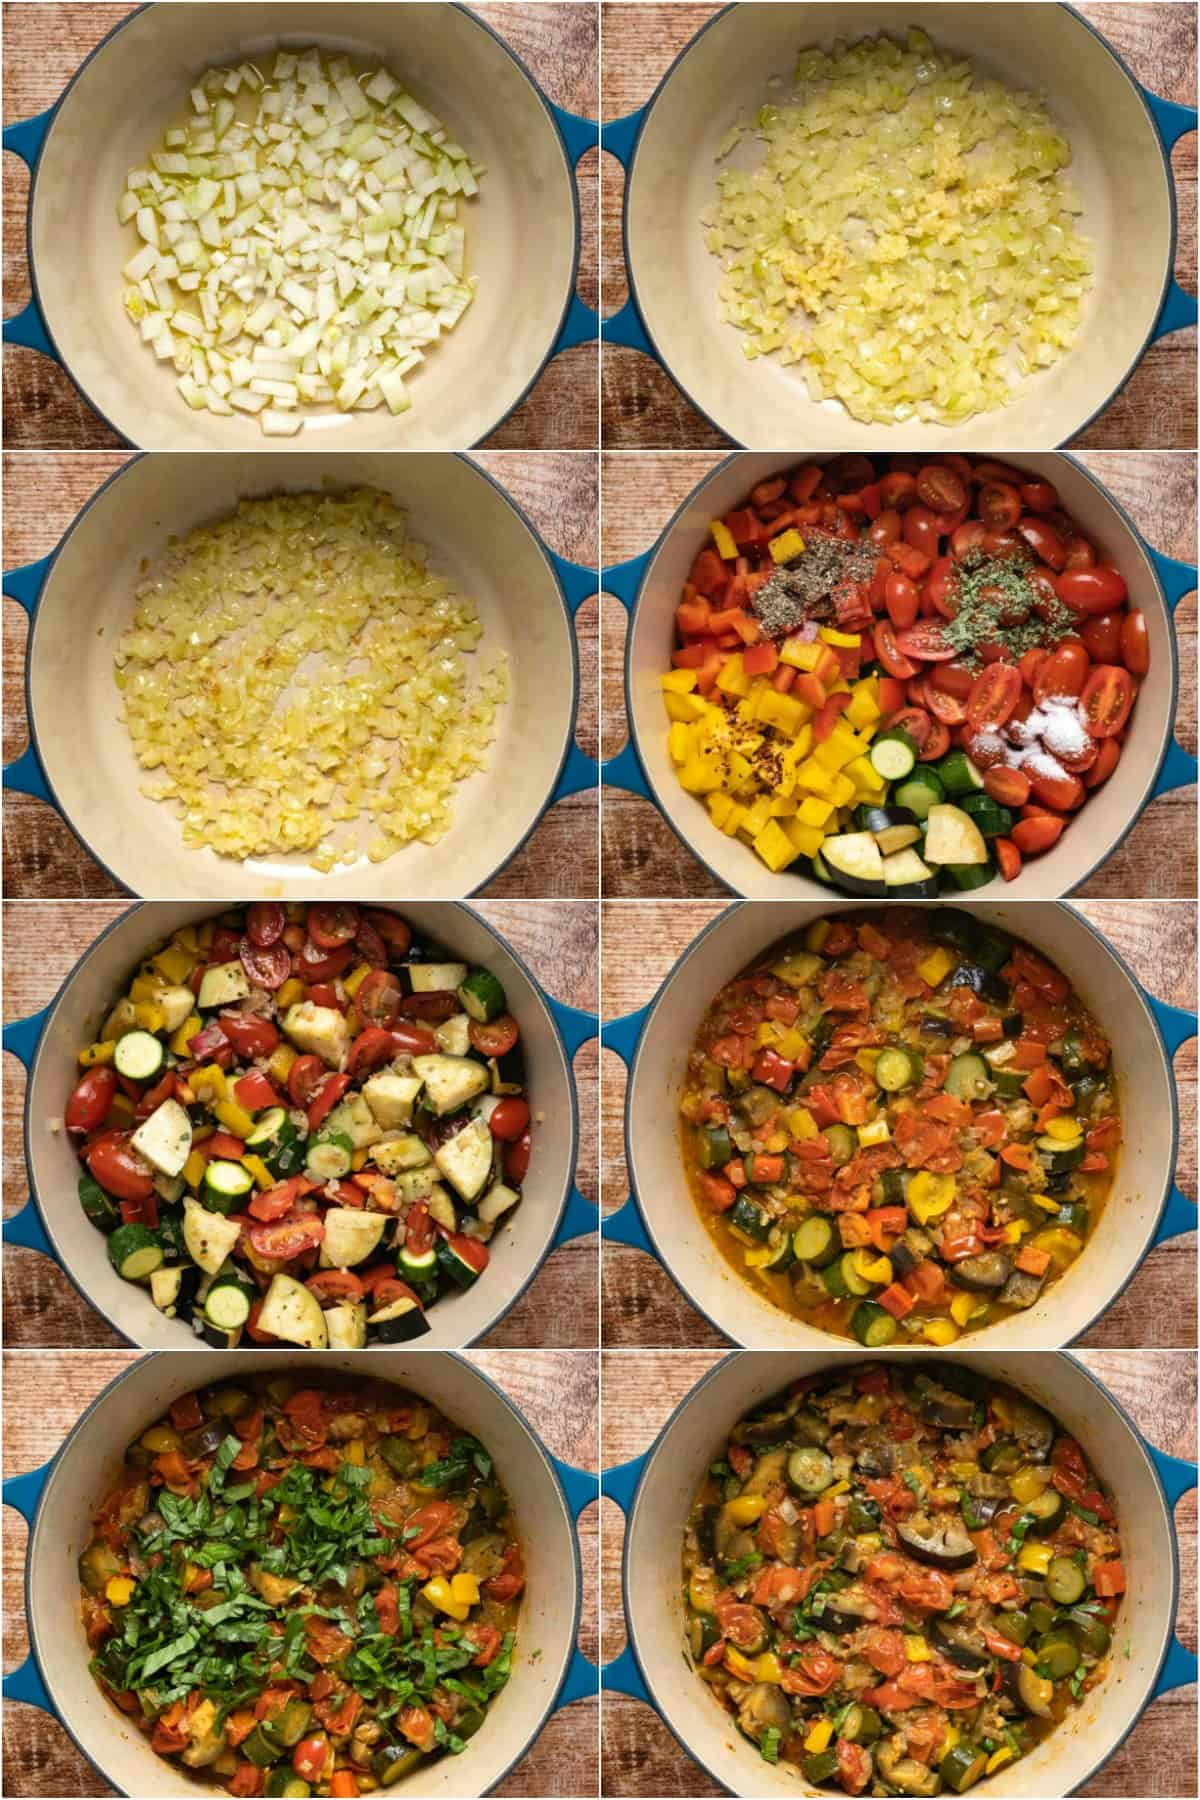 Step by step process photo collage of making ratatouille.